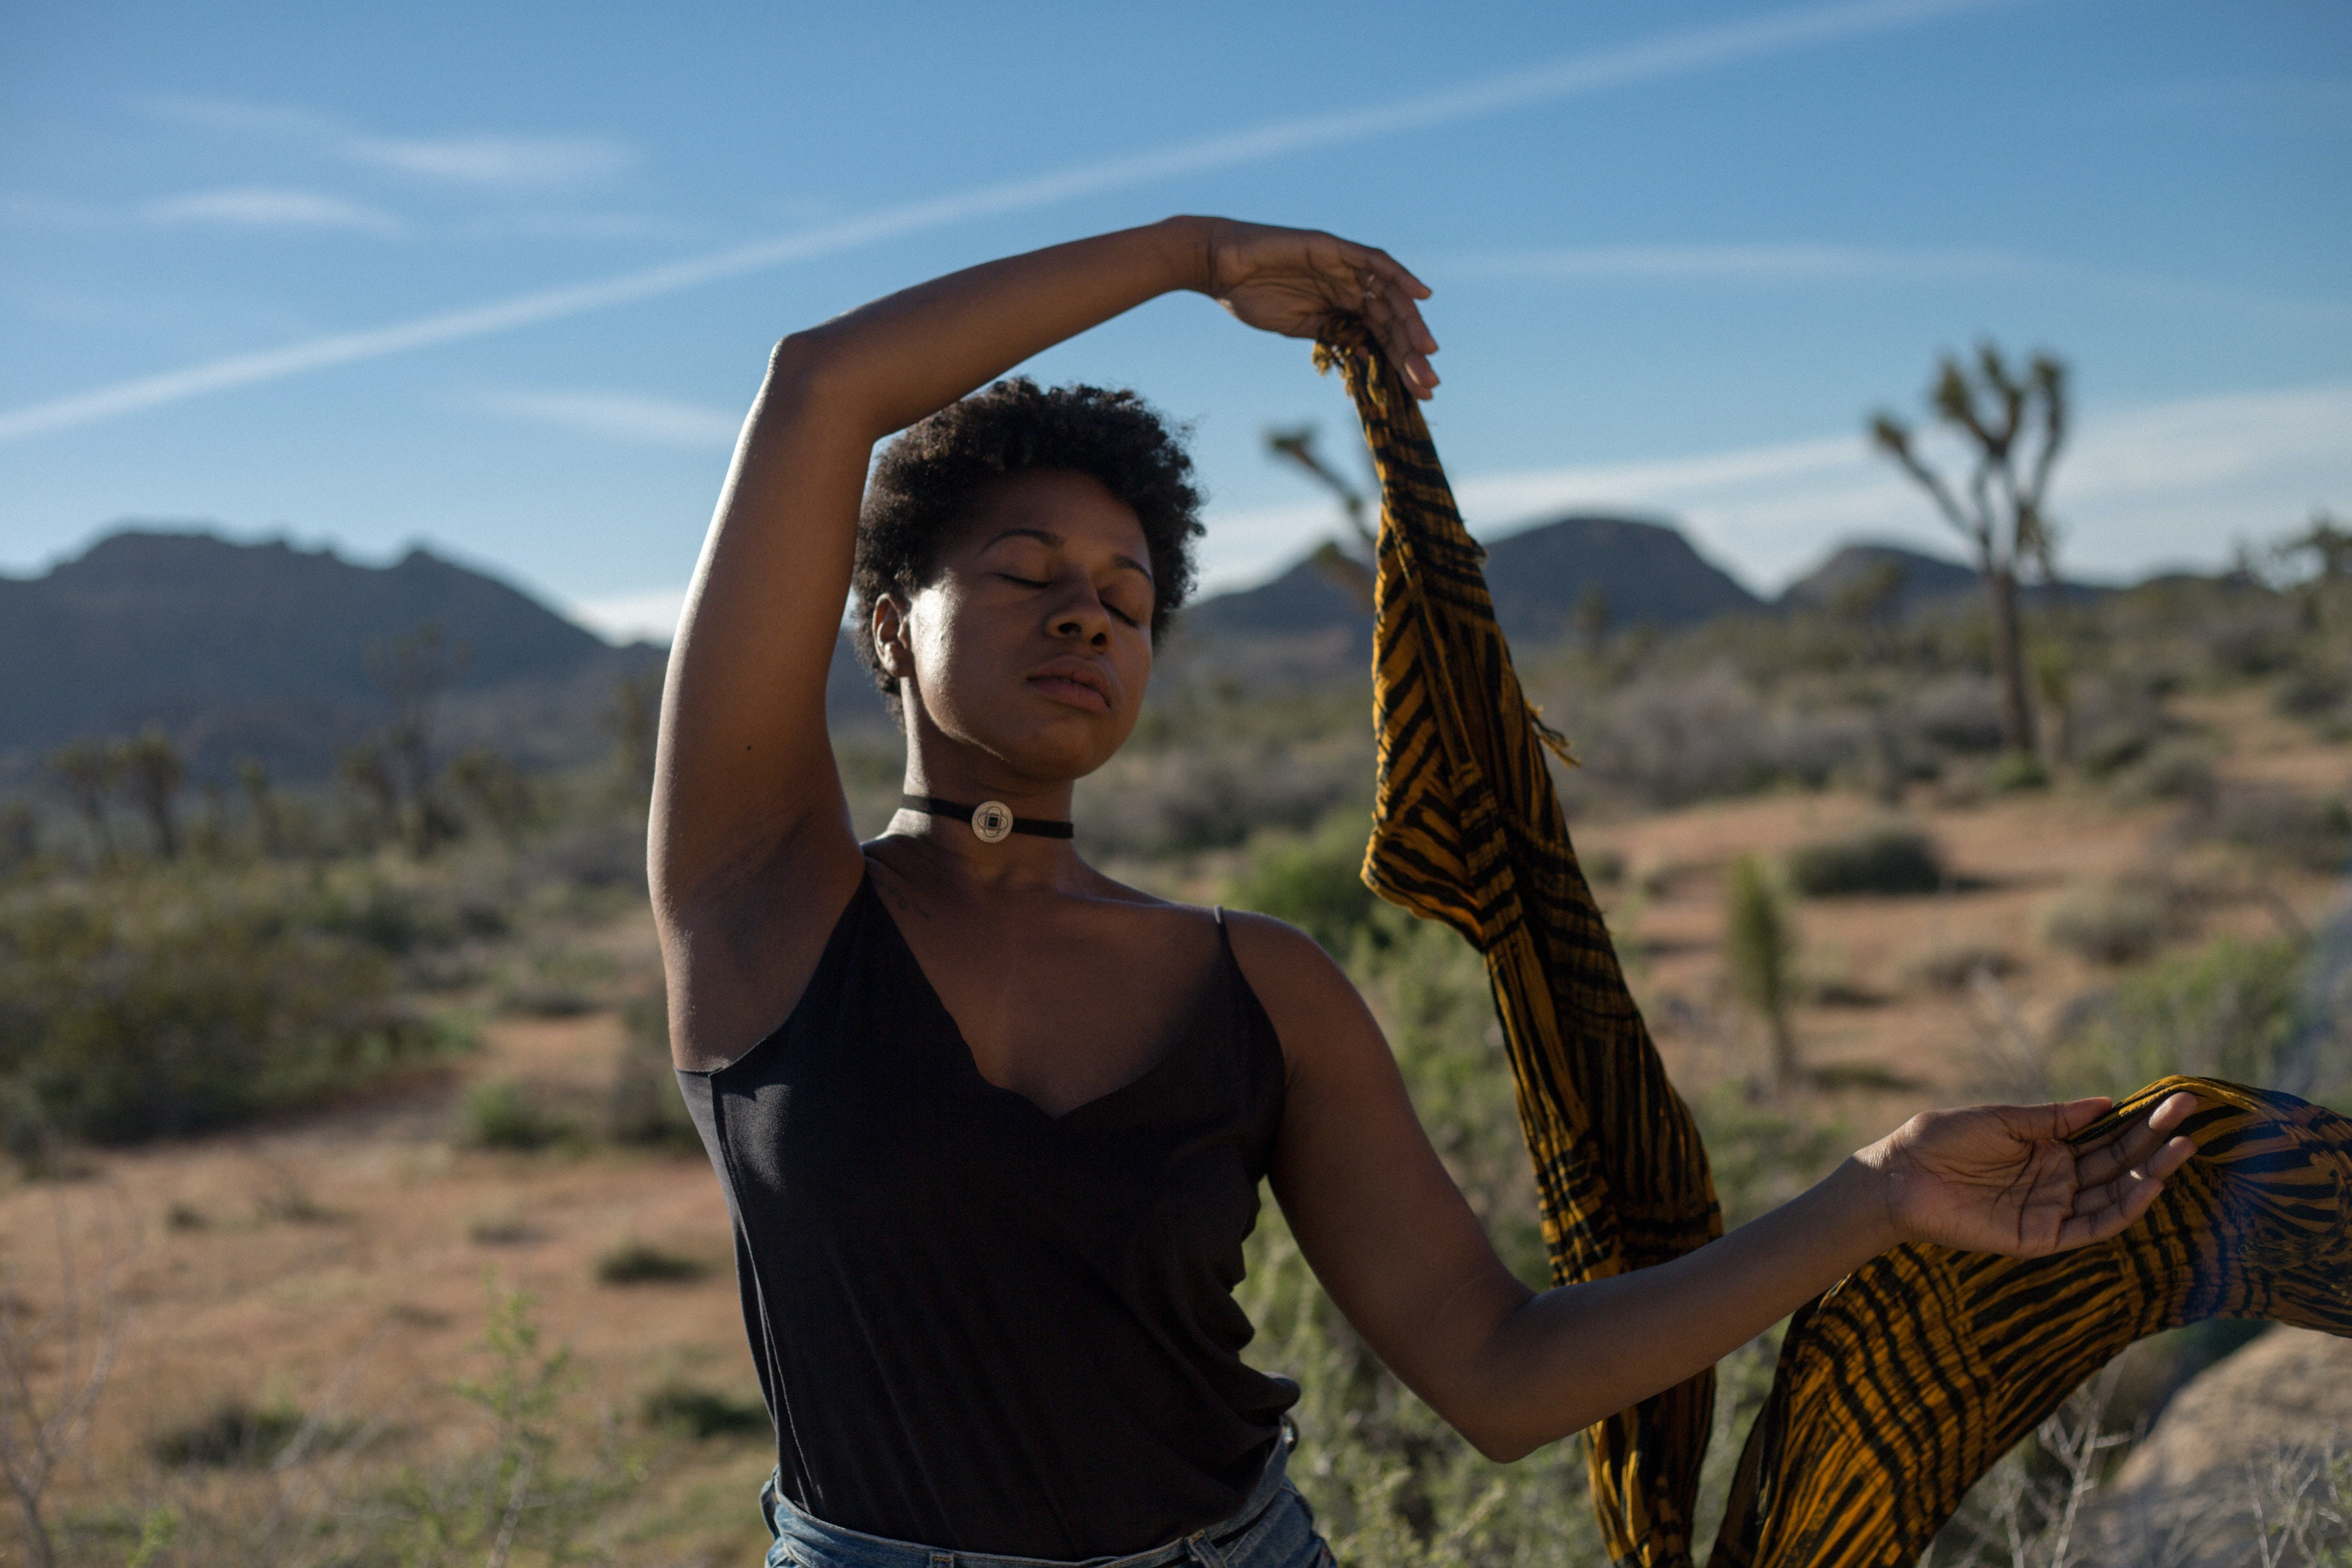 Woman dances peacefully with eyes closed in Joshua Tree desert